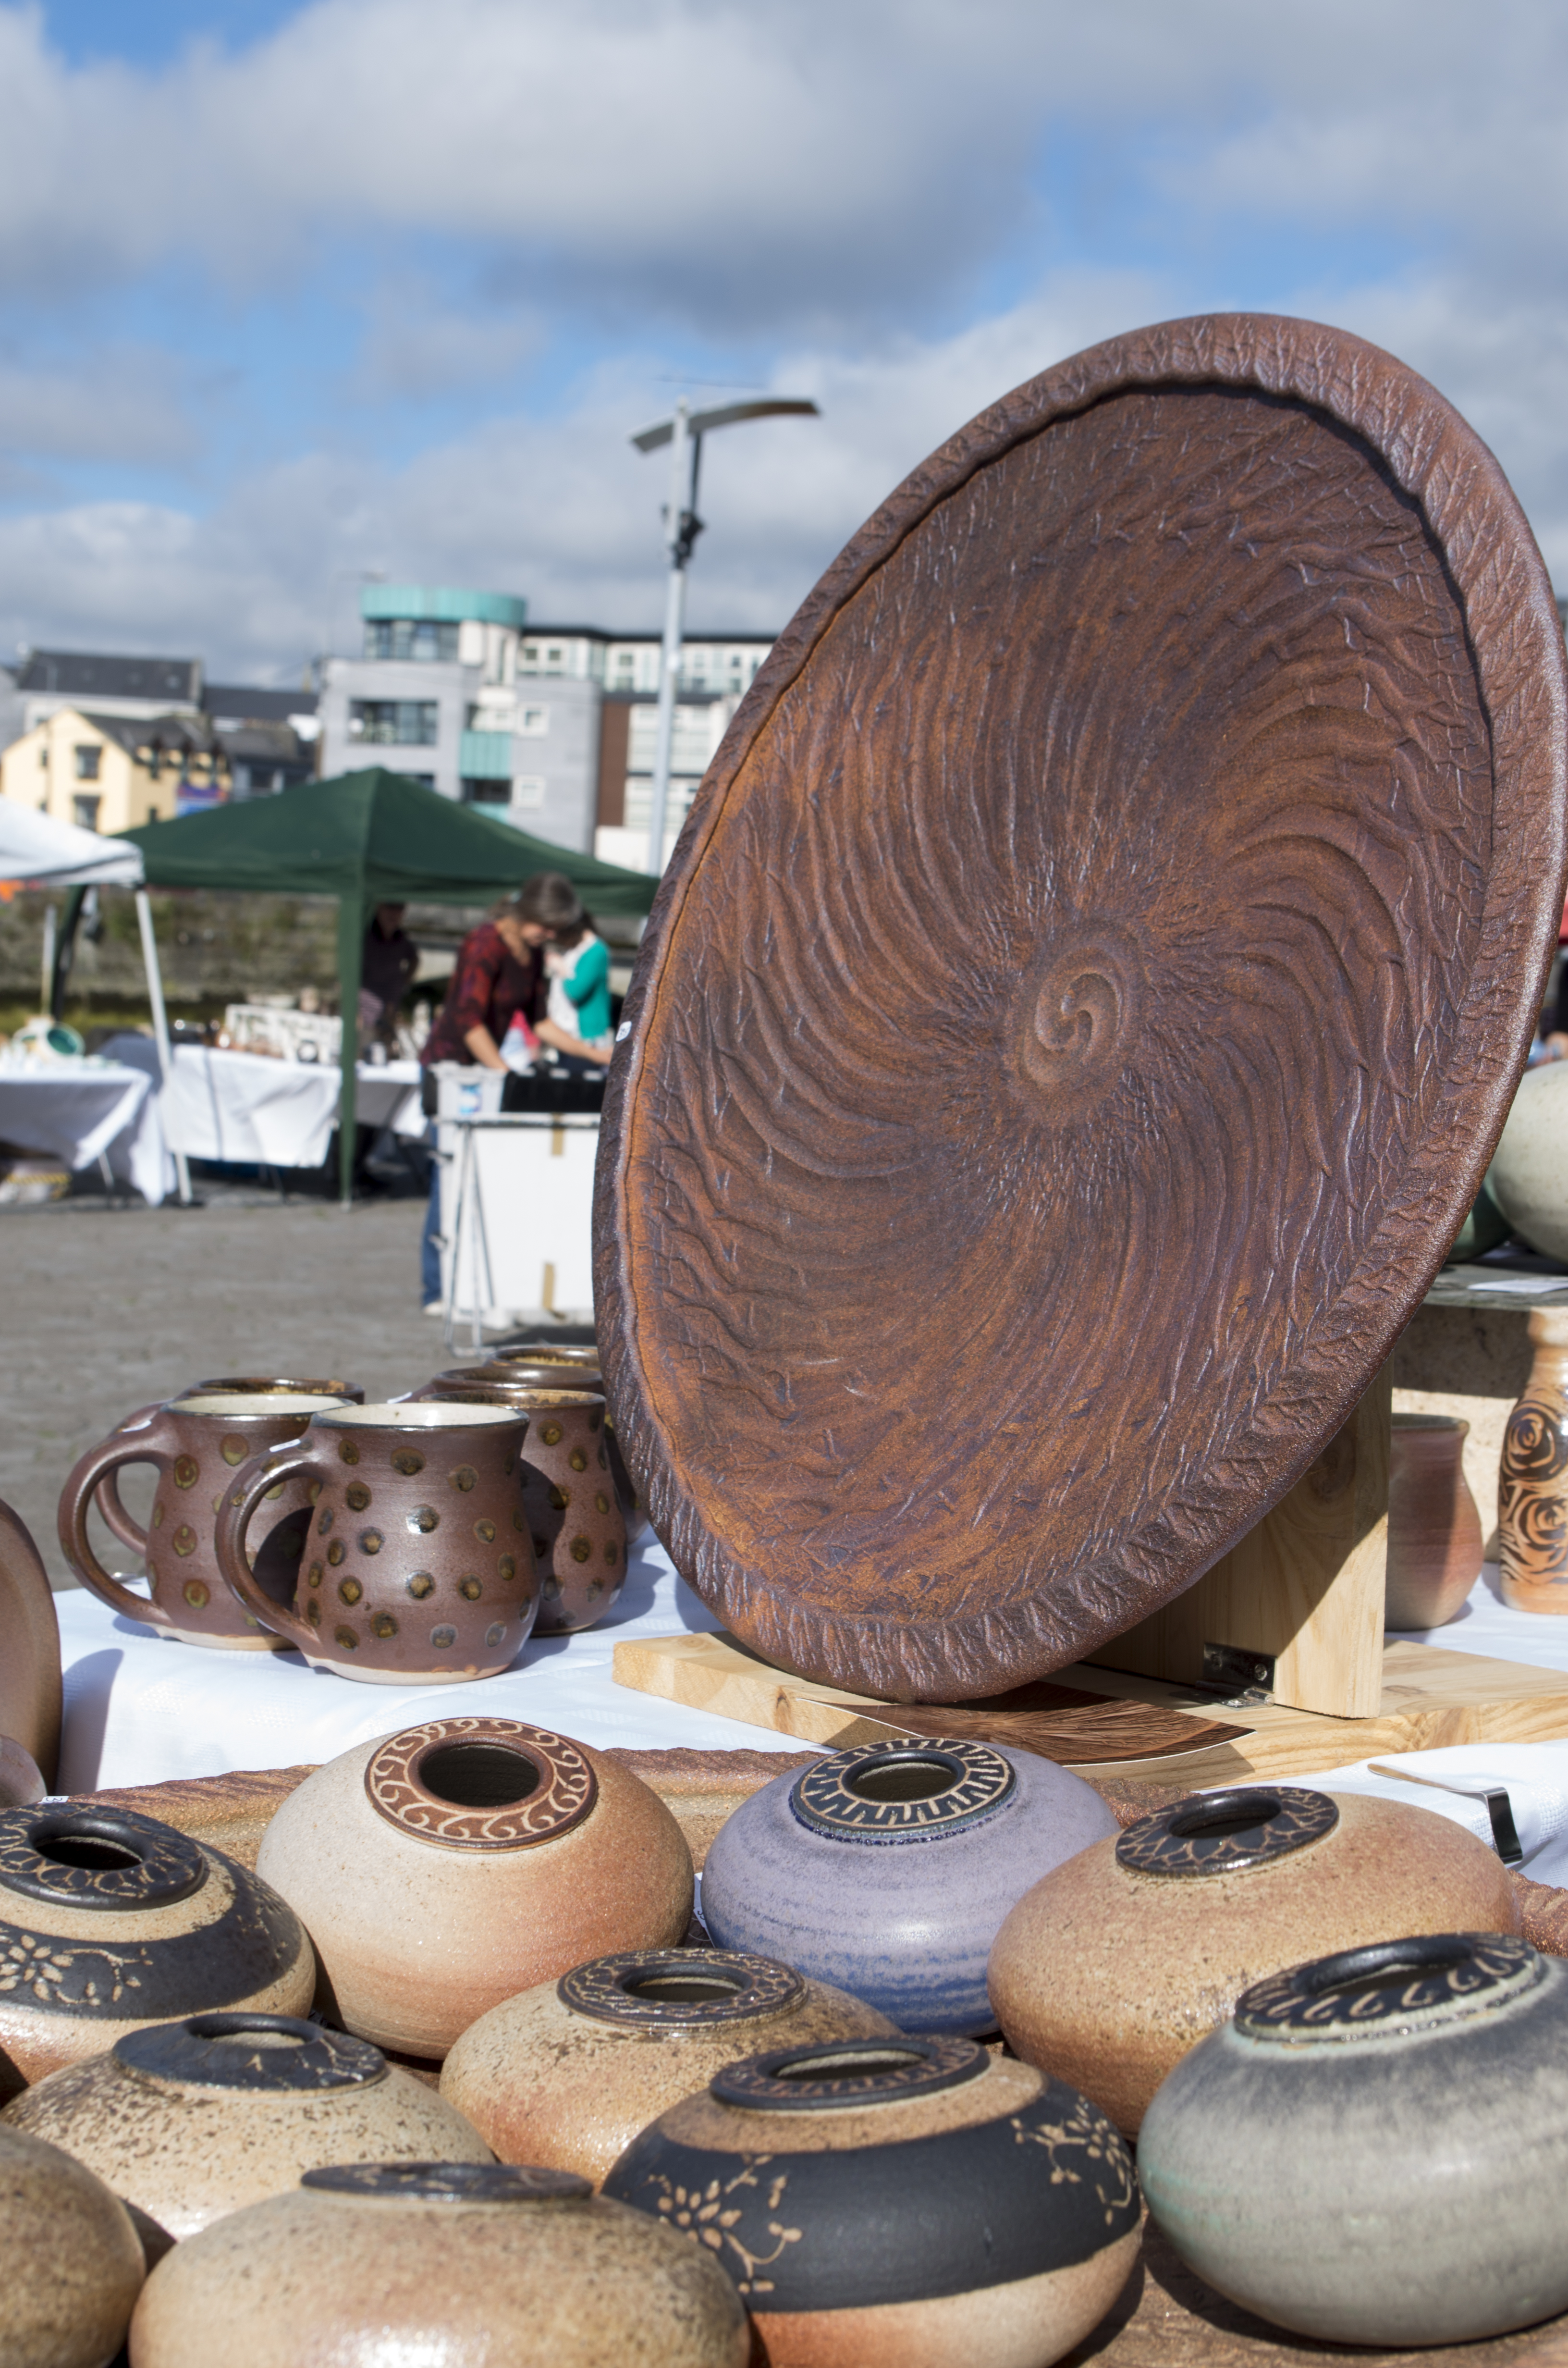 Galway Potters Market at Spanish Arch